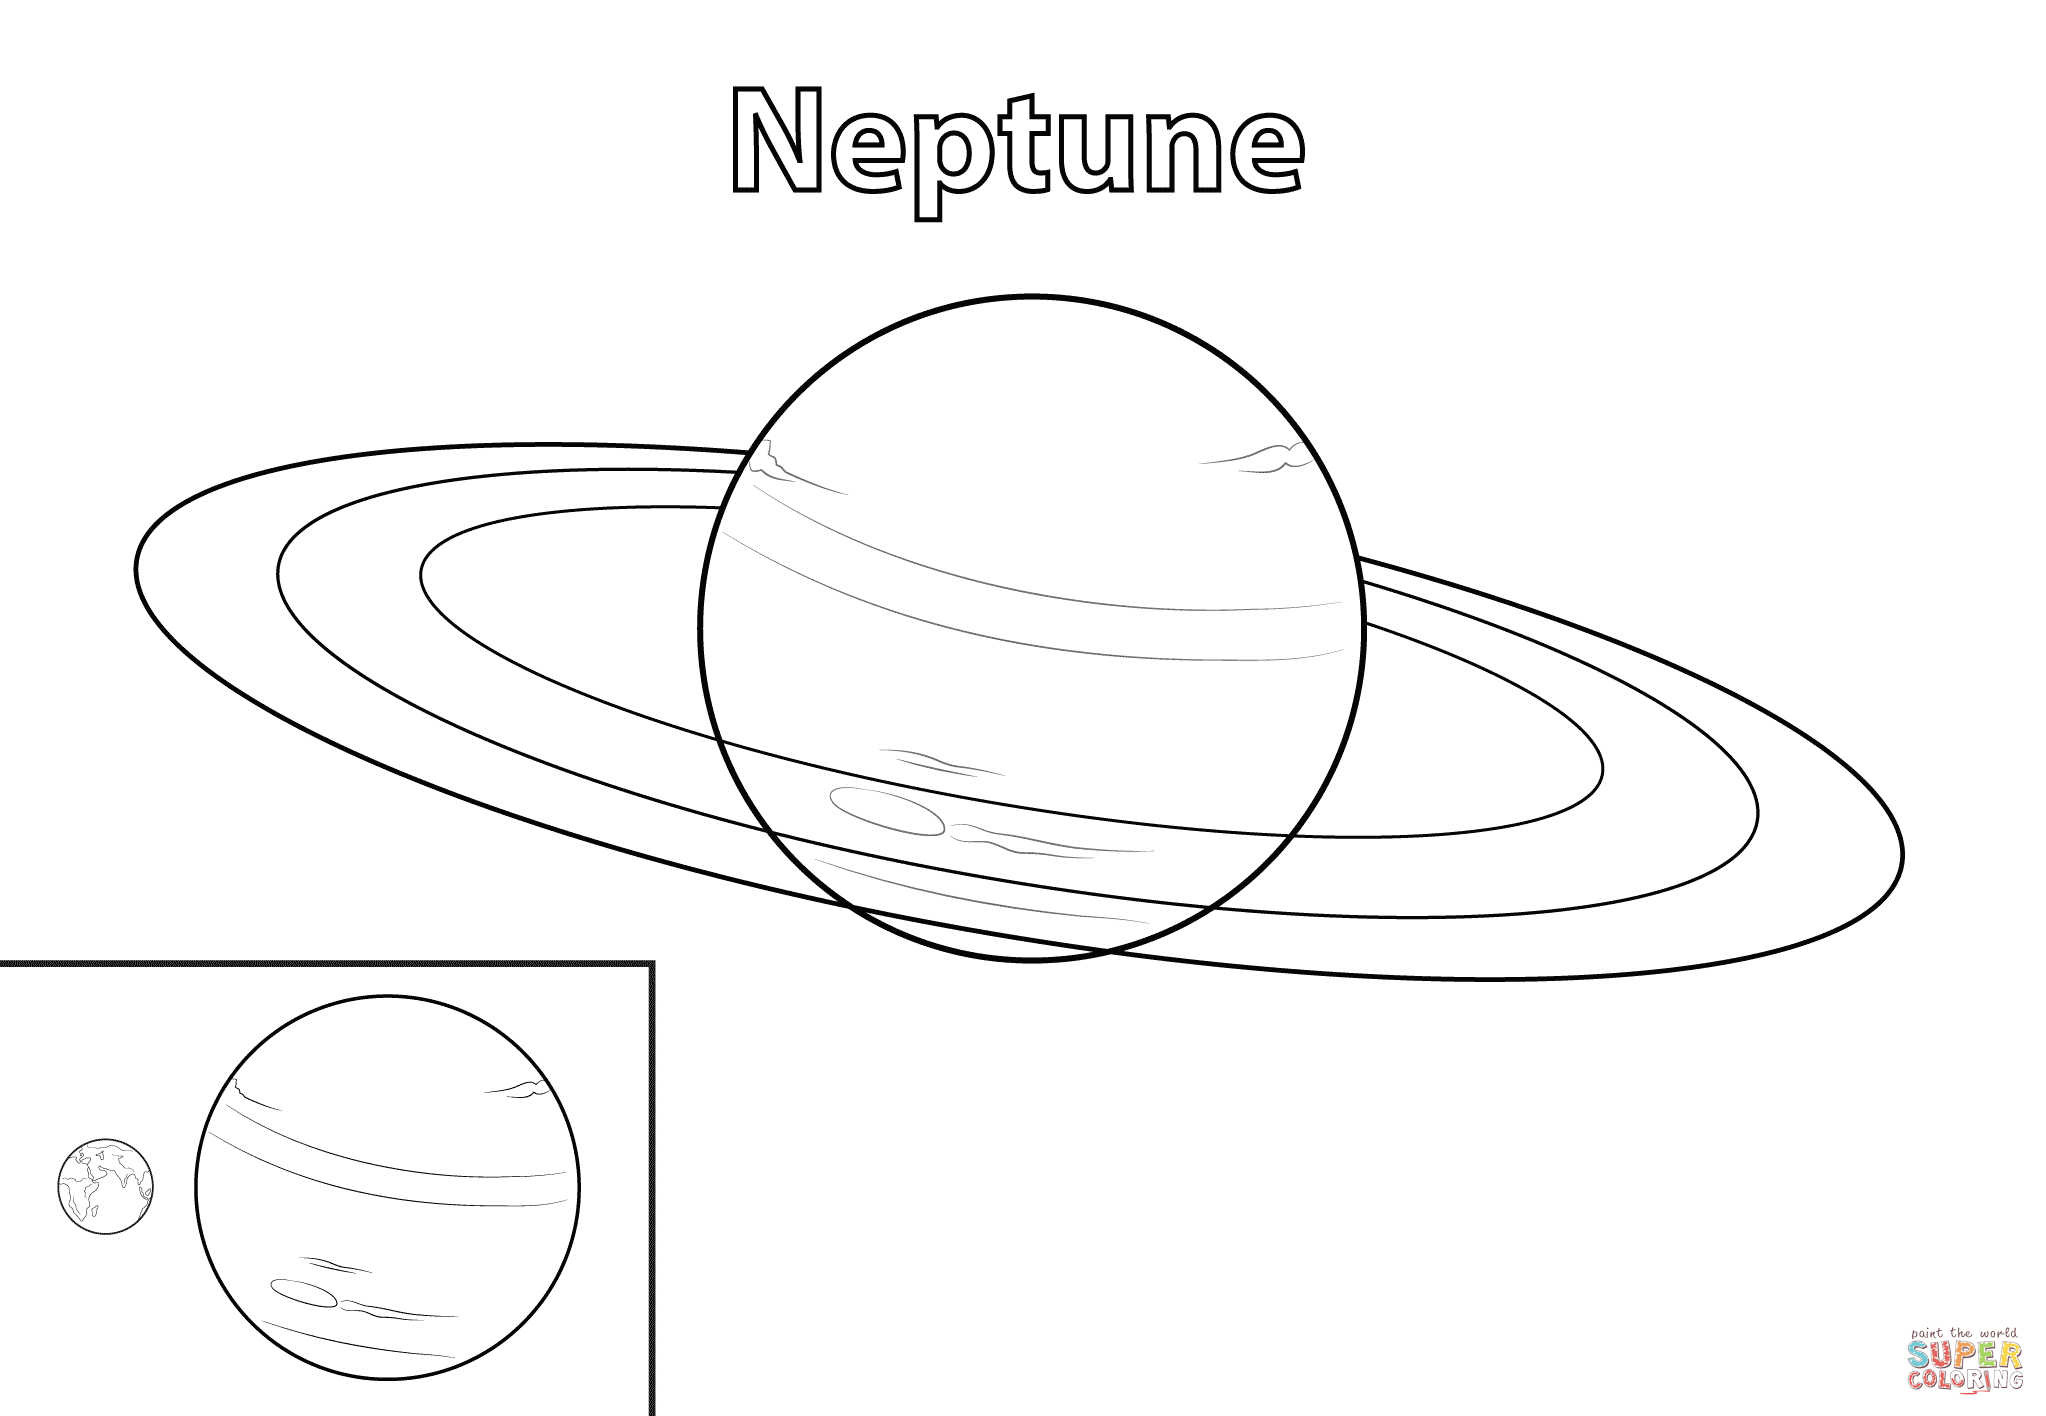 Neptune Planet Coloring Pages